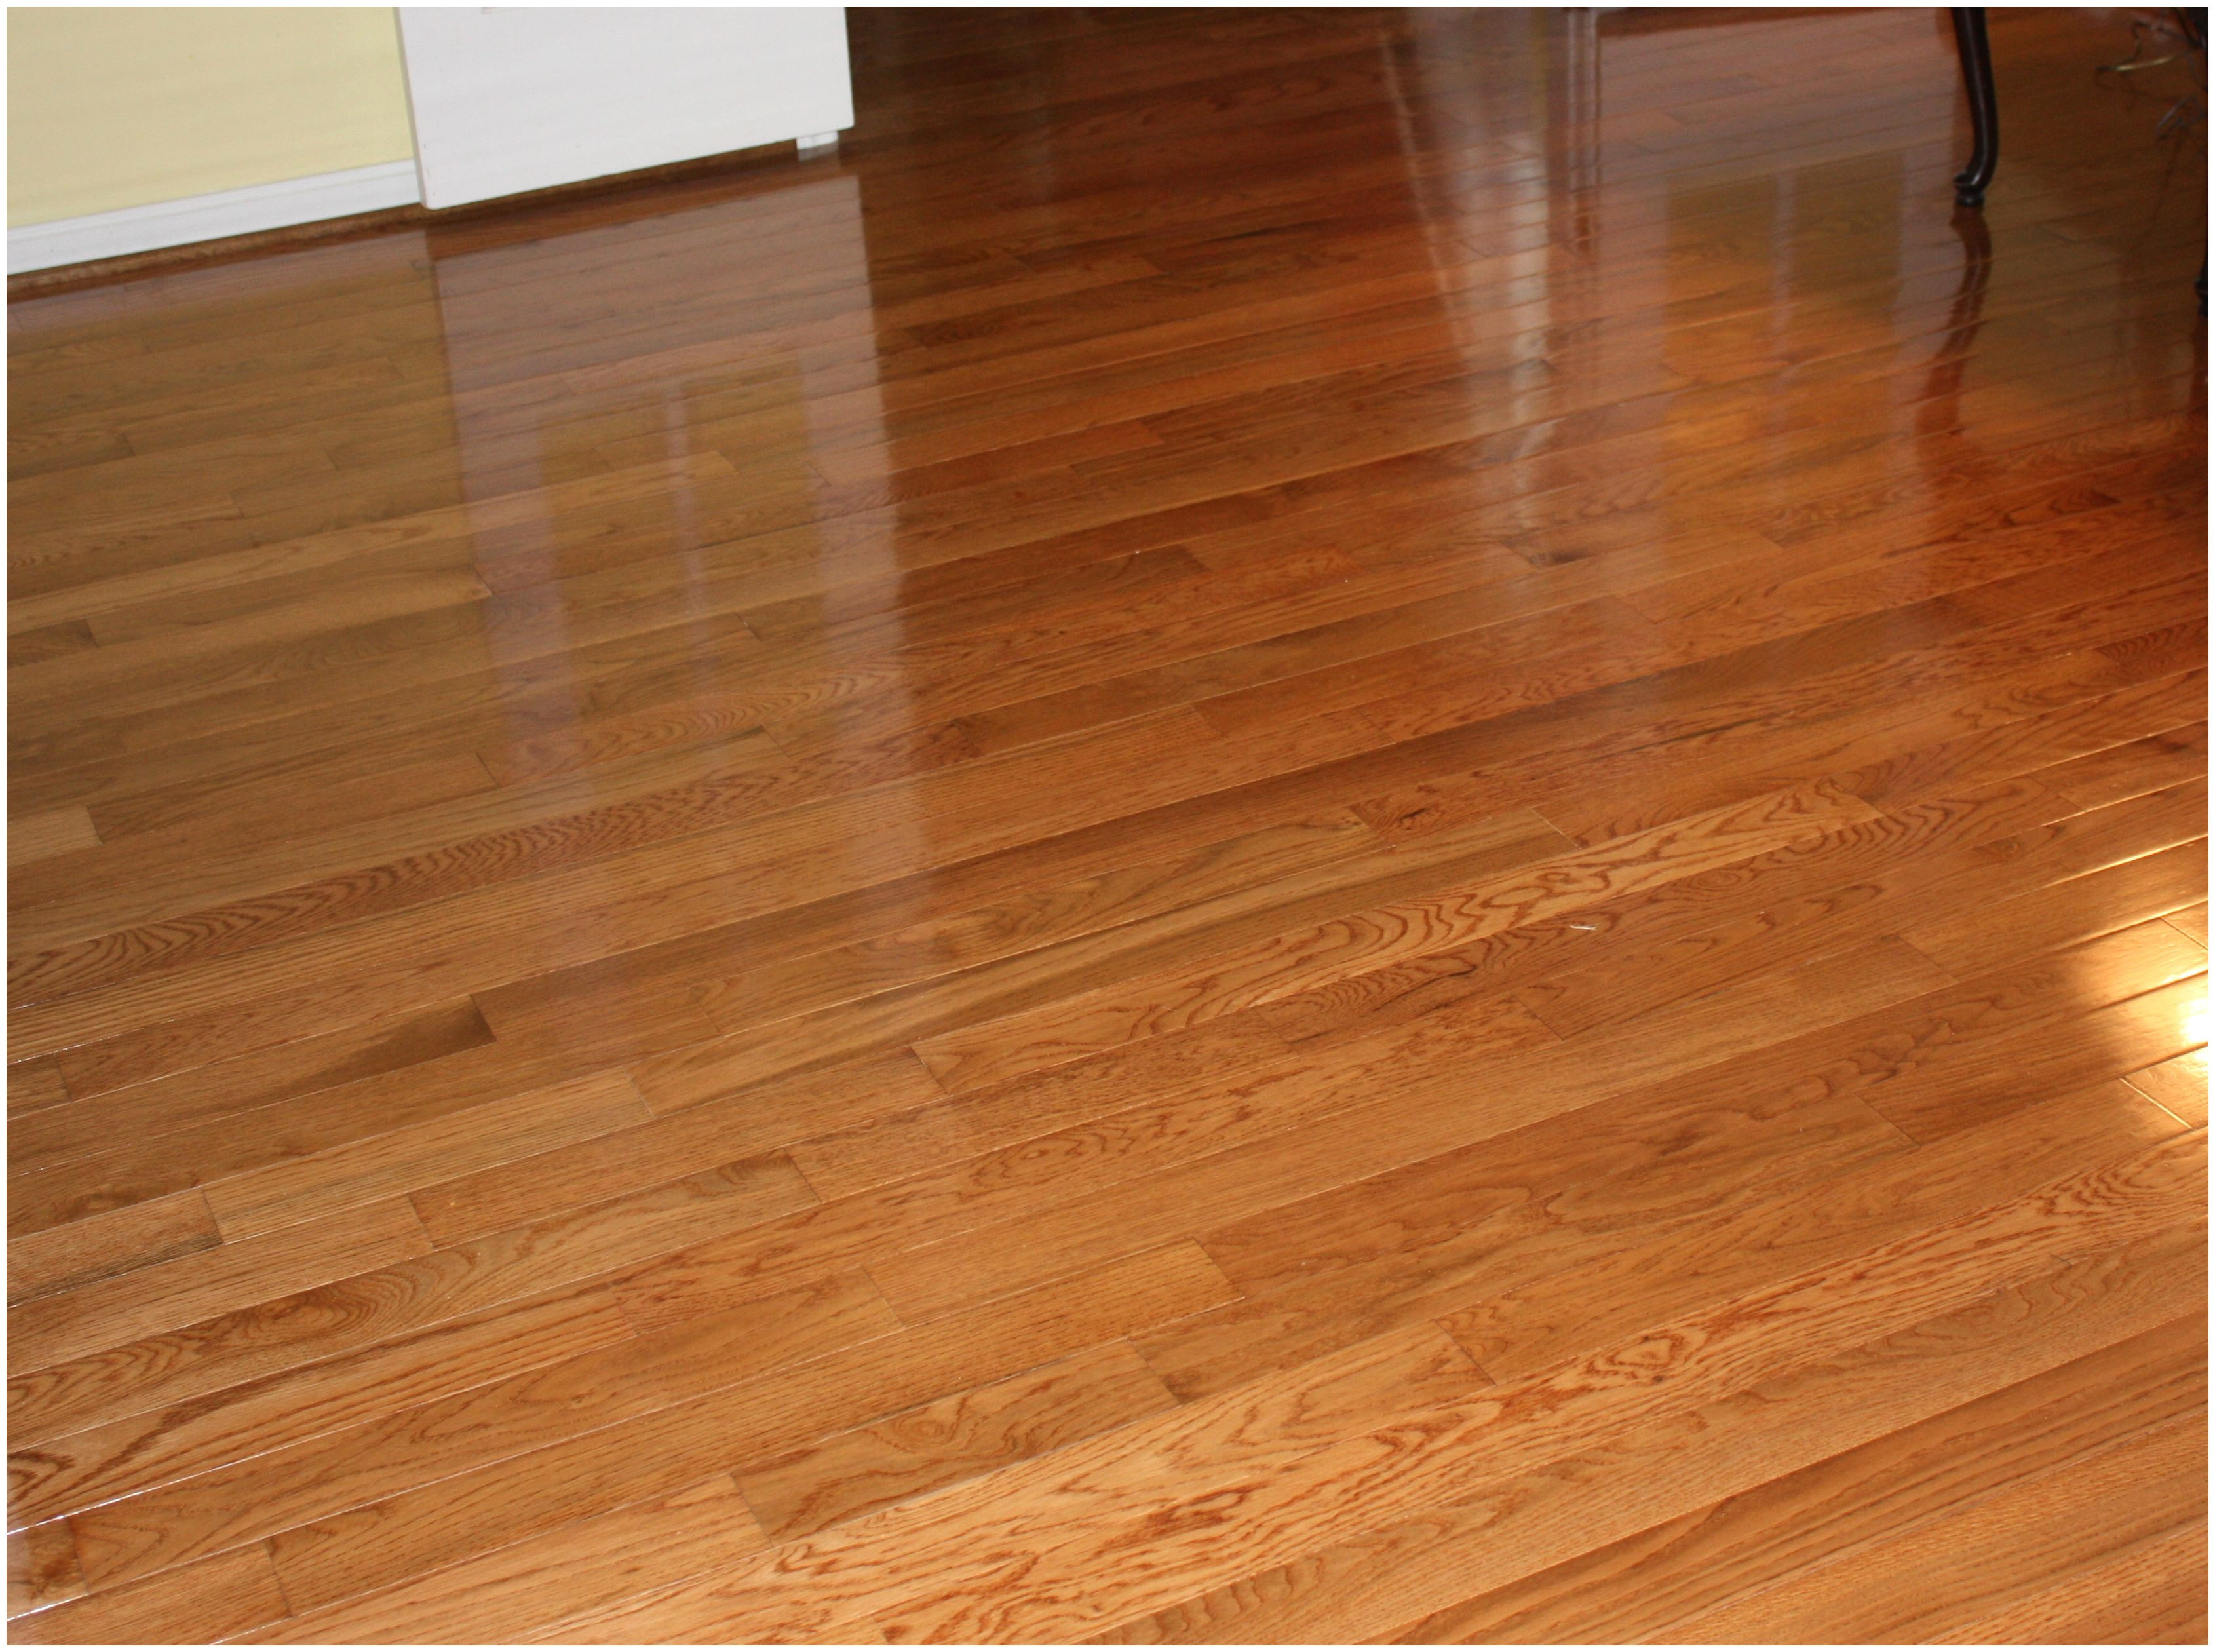 laminate hardwood flooring pros and cons of 18 new engineered hardwood flooring pros and cons photos dizpos com with engineered hardwood flooring pros and cons awesome hardwood floor design cheap laminate flooring laminate wood collection